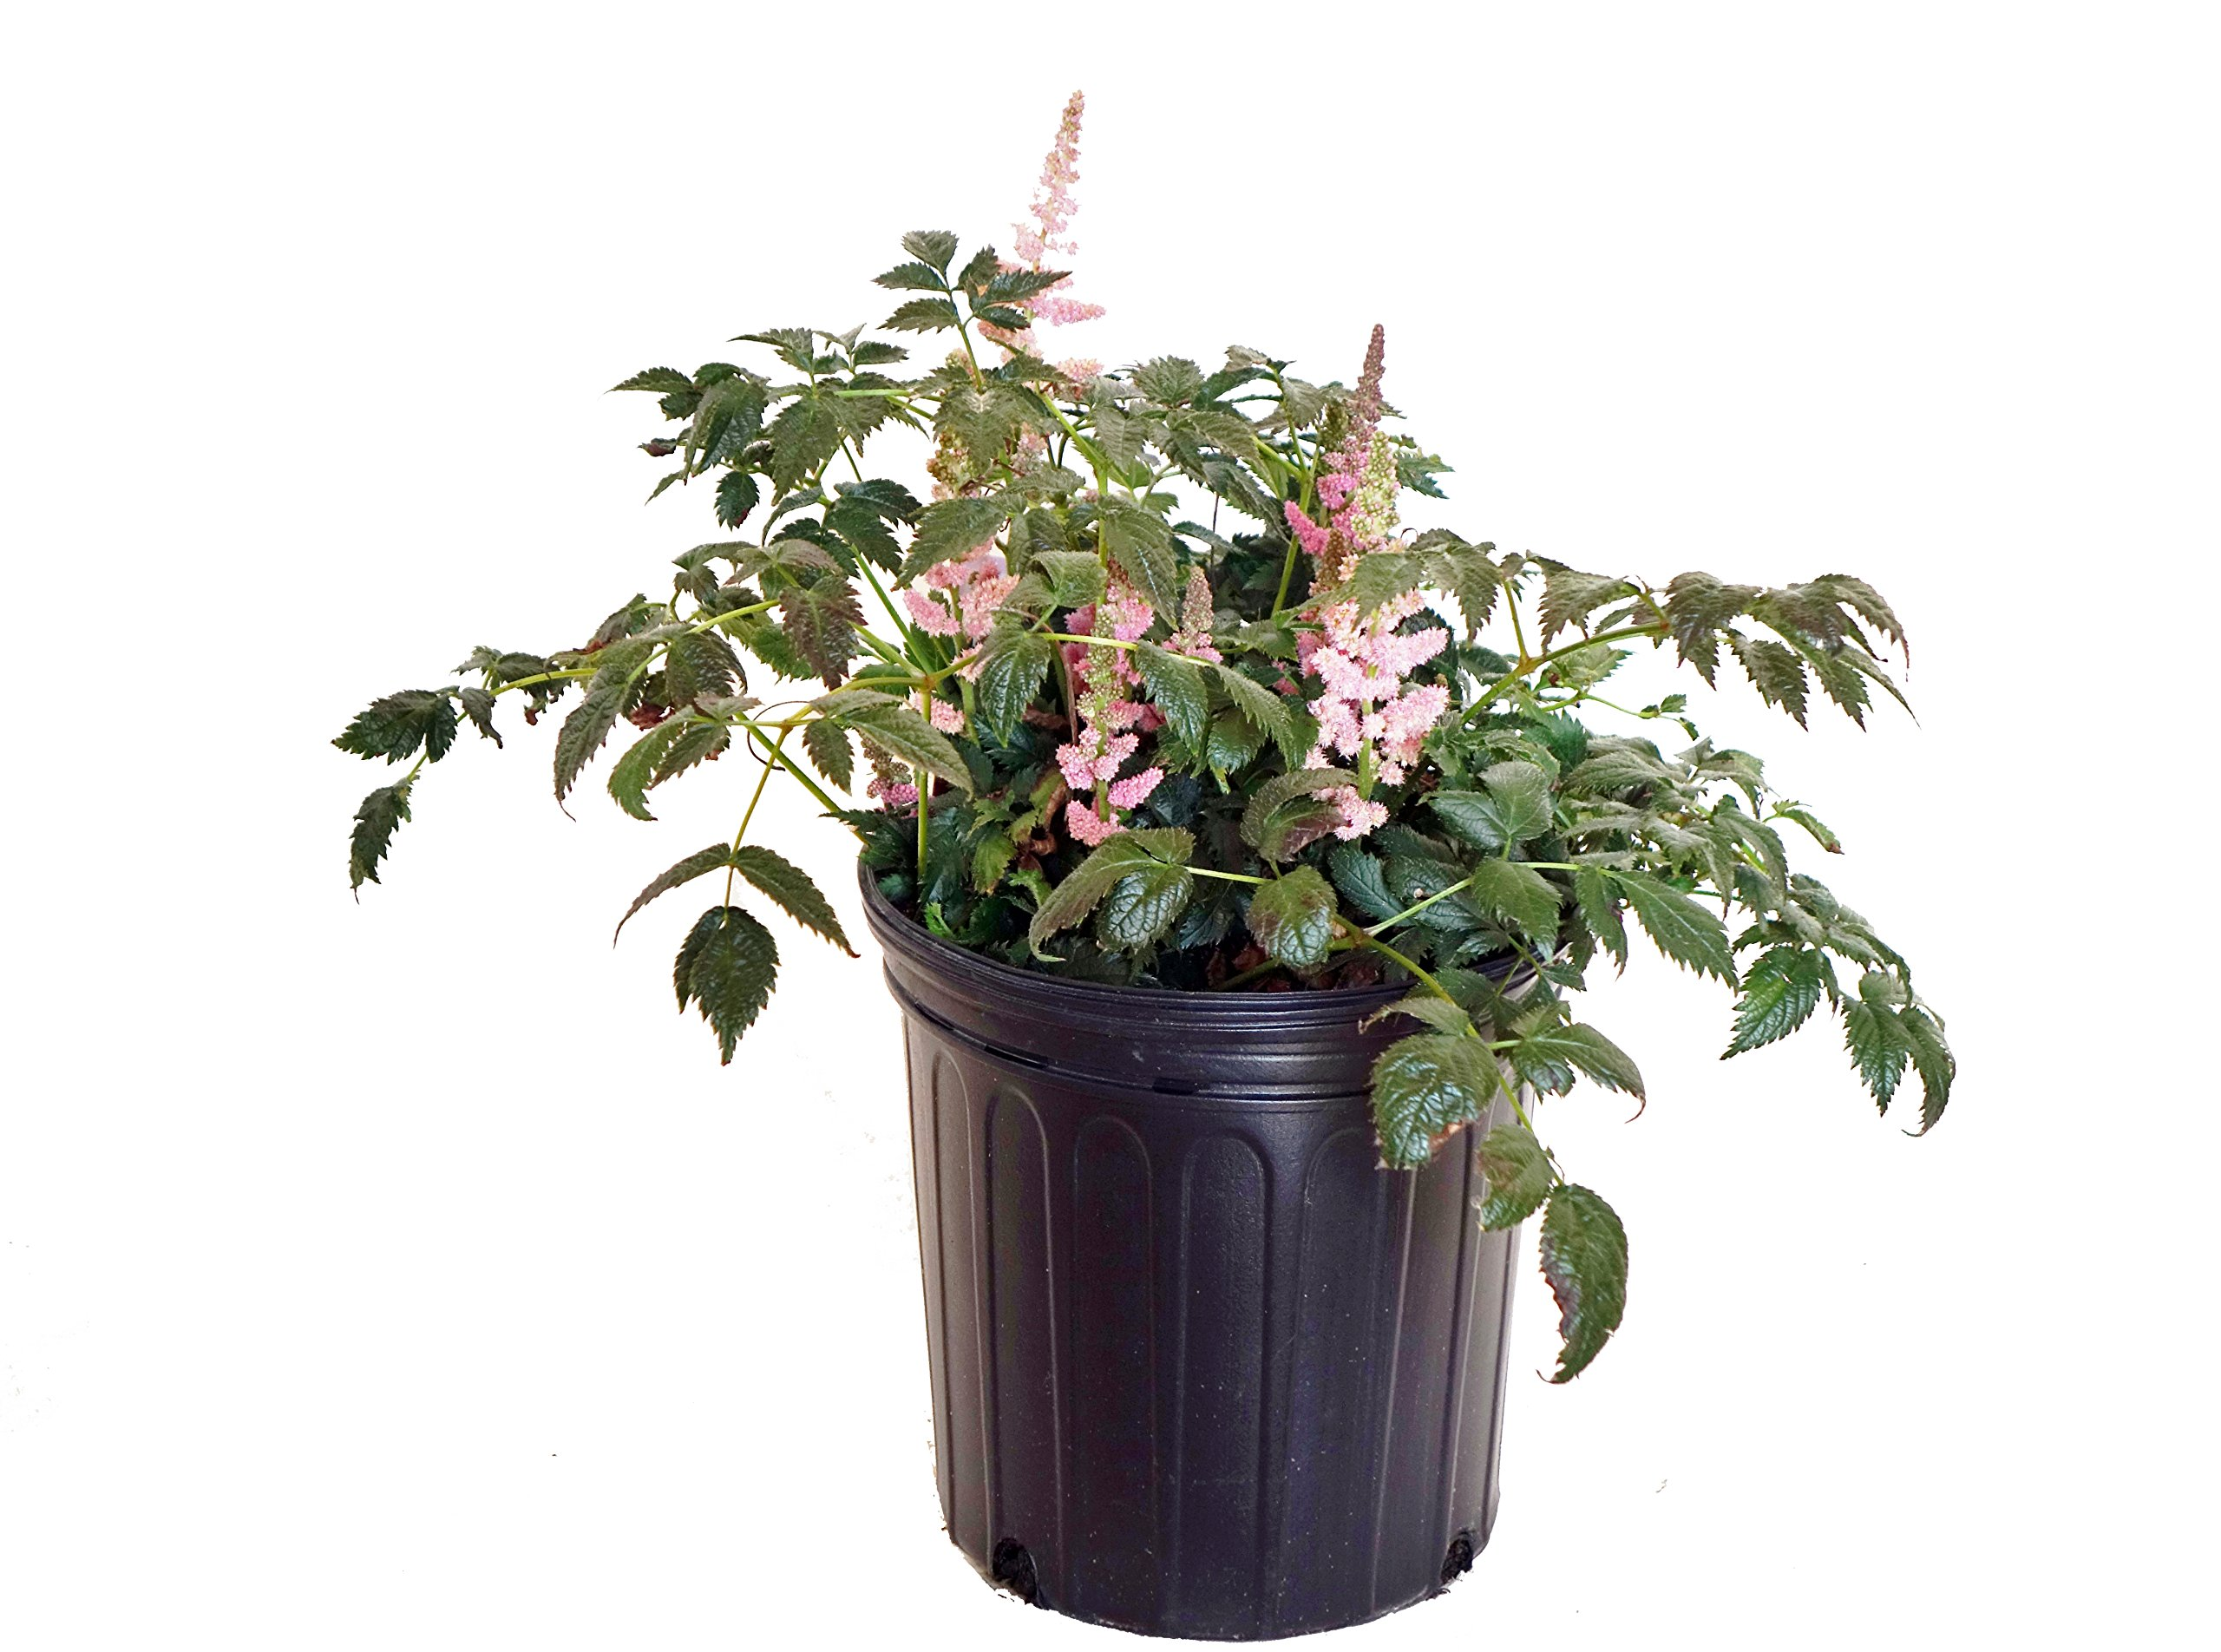 Astilbe chinensis 'Visions in Pink' (Chinese Astilbe) Perennial, Pink Flowers, 2 - Size Container